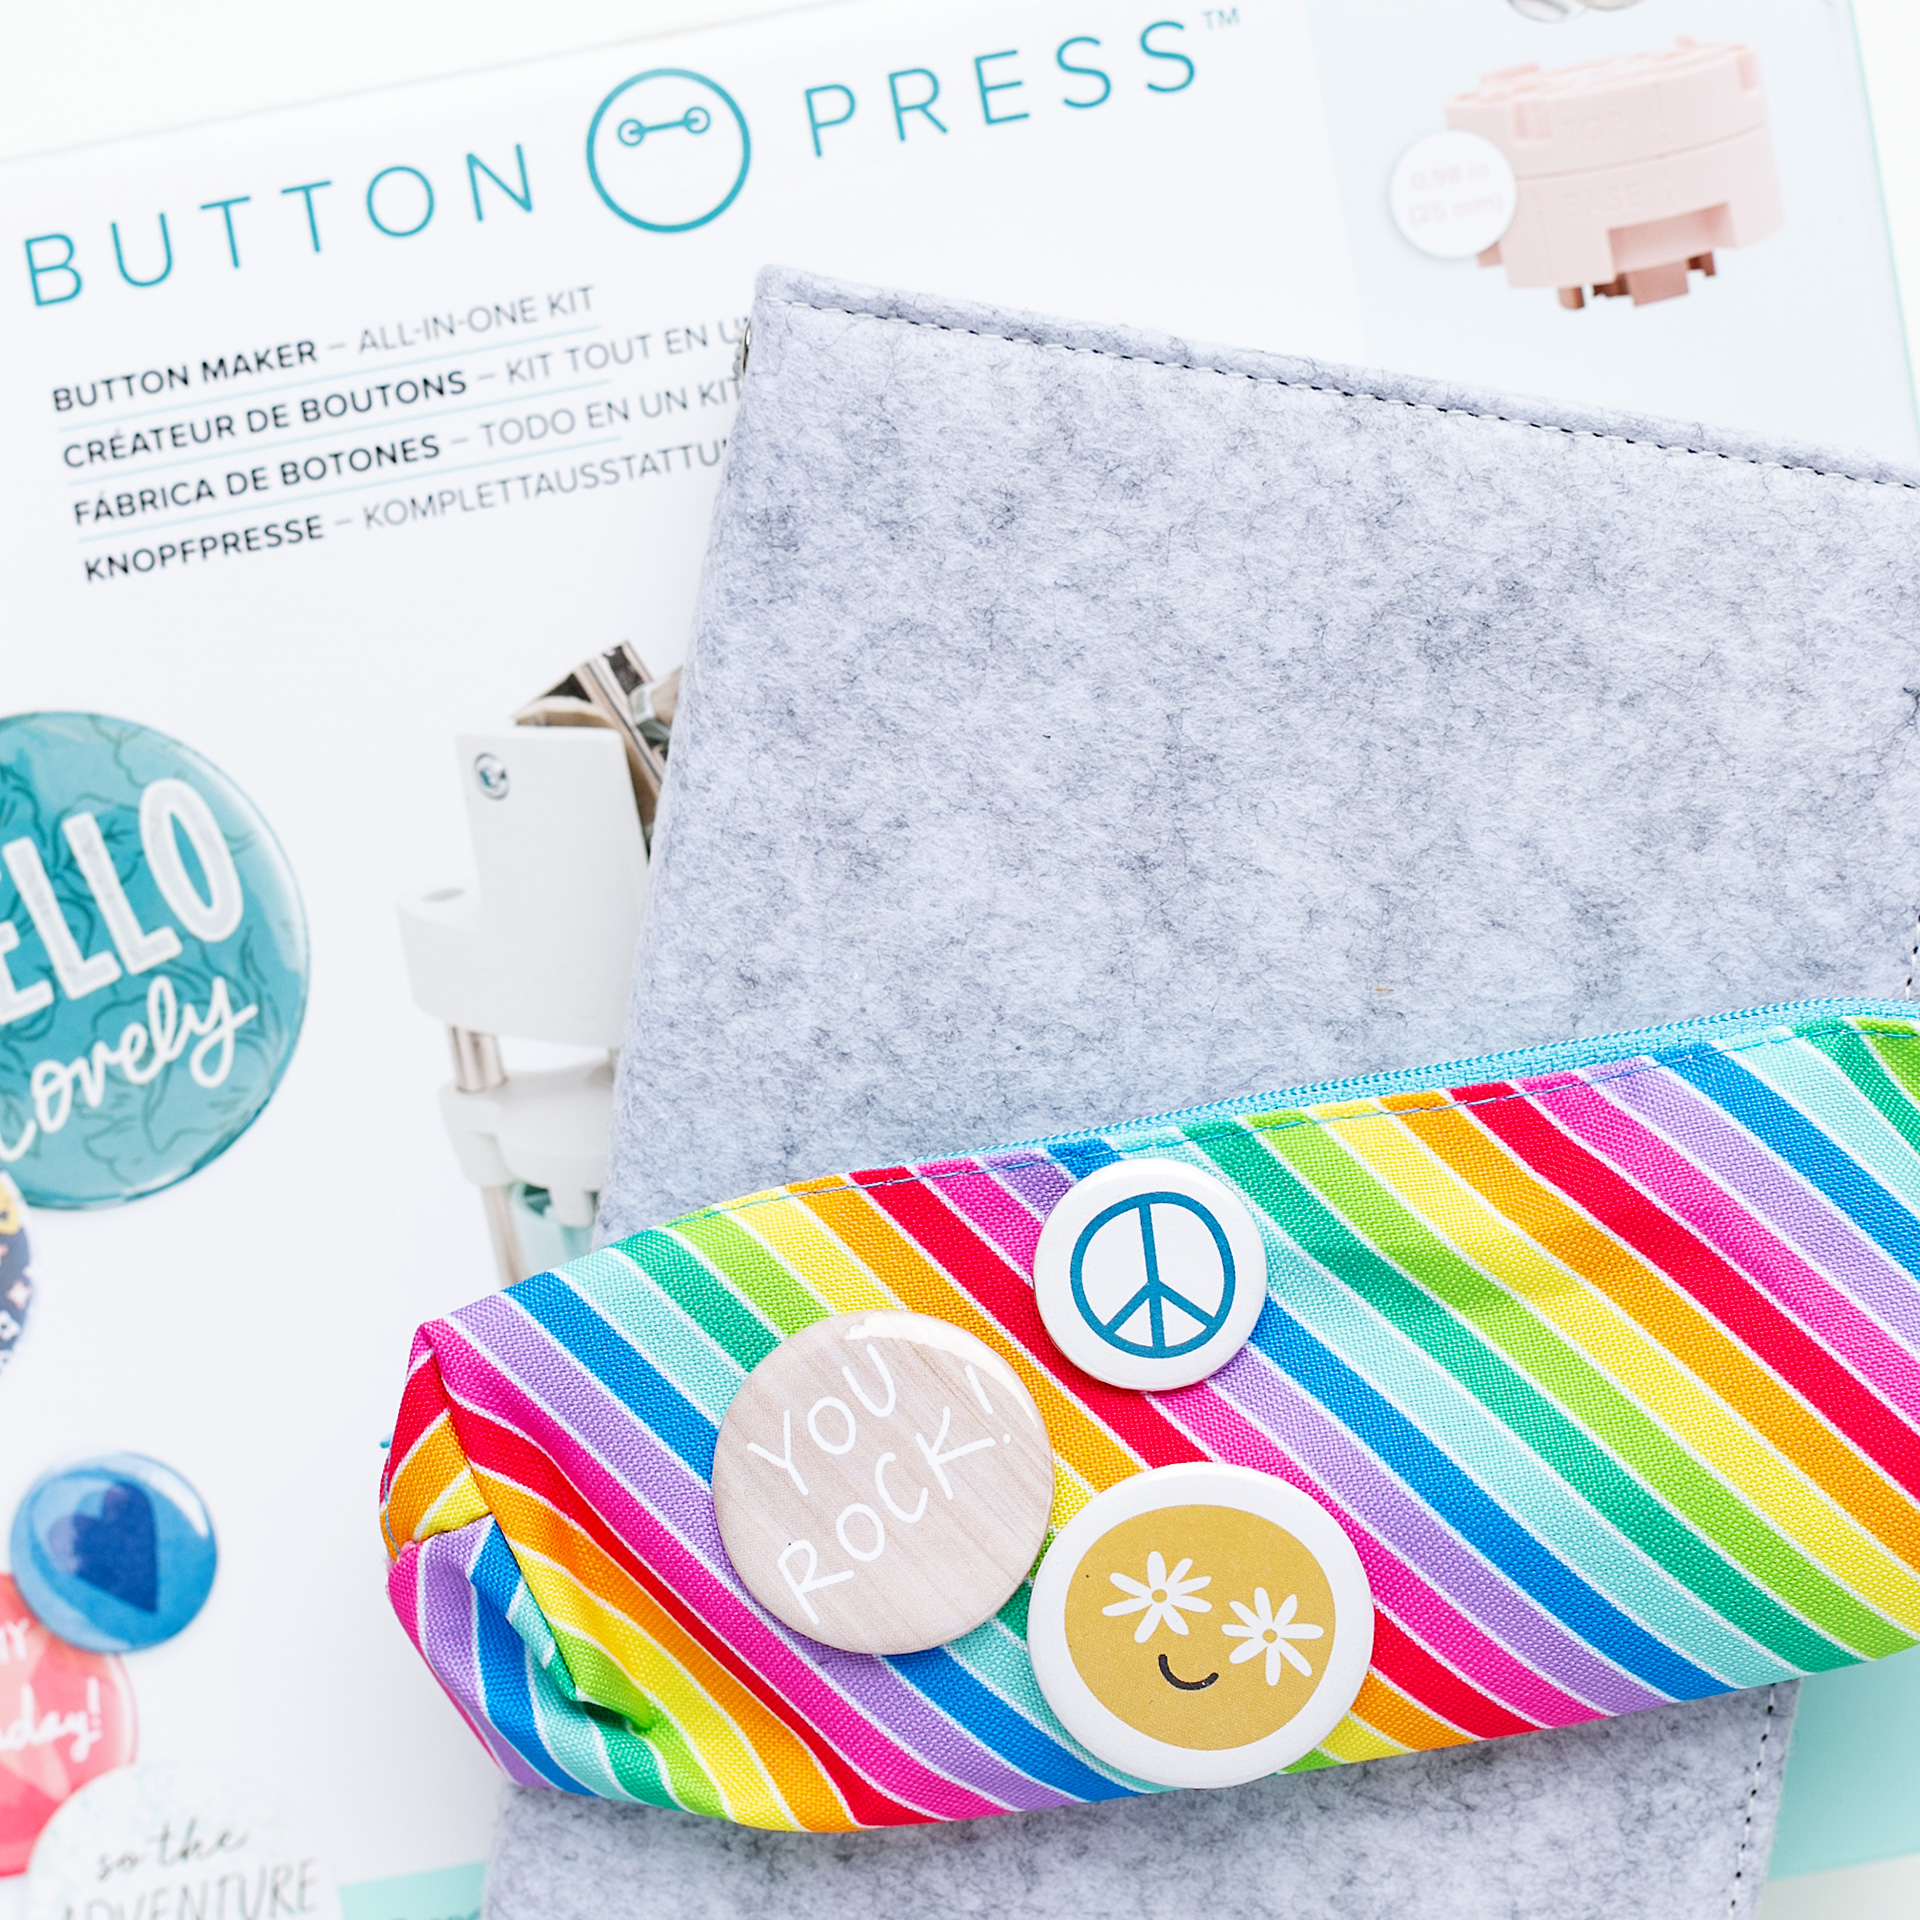 The Button Press packaging with a colorful and fun pencil case with flair buttons